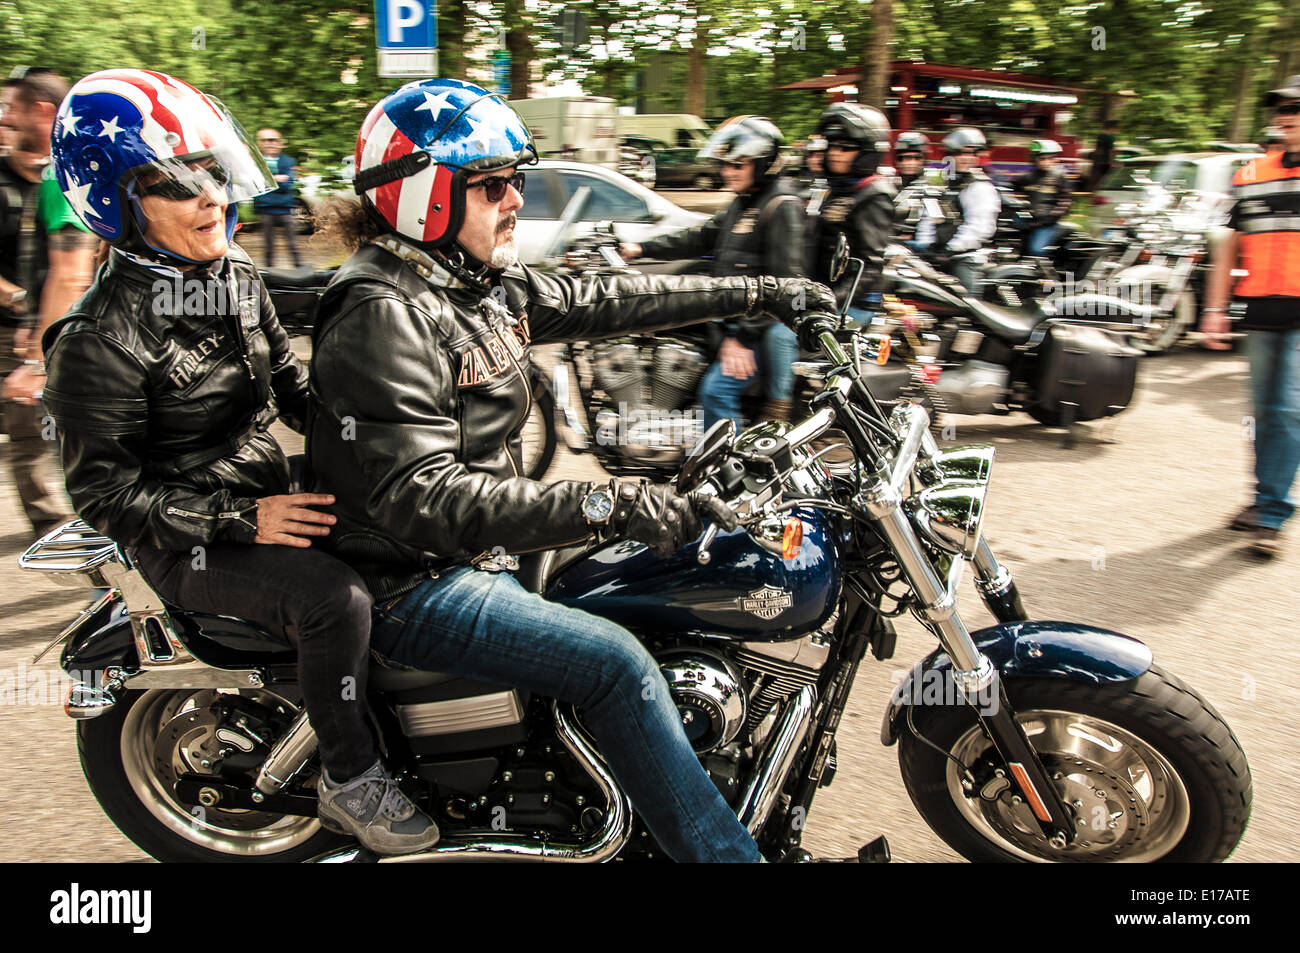 Piedmont, Italy. 25th May, 2014. Last day of the meeting Harley Davidson and Jeep with intent beneficial to help dell'IRCC (Institute of Cancer Research Candiolo). This morning the parade through the streets of the city that will end in the center, in Piazza Vittorio Veneto. Credit:  Realy Easy Star/Alamy Live News - Stock Image